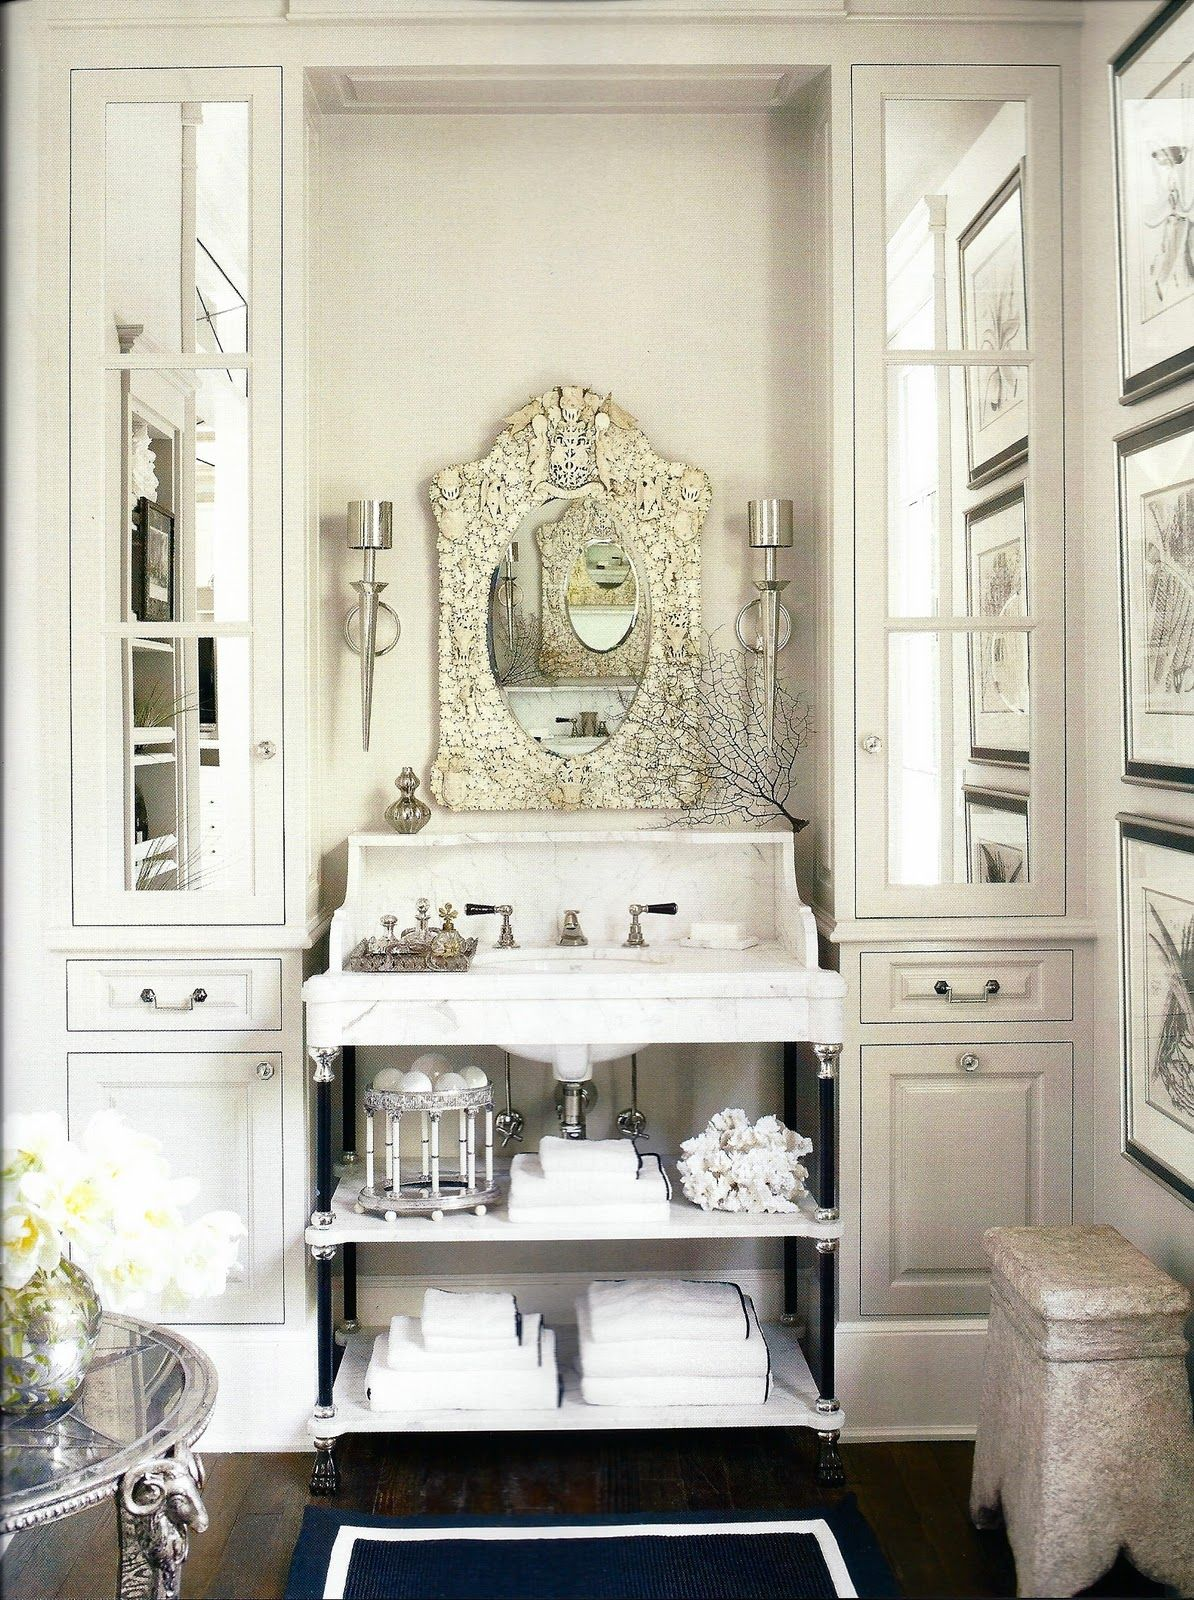 1000 Images About Bathroom Vanity Ideas On Pinterest Beach Cottages Cat Litter Boxes And Master Bath